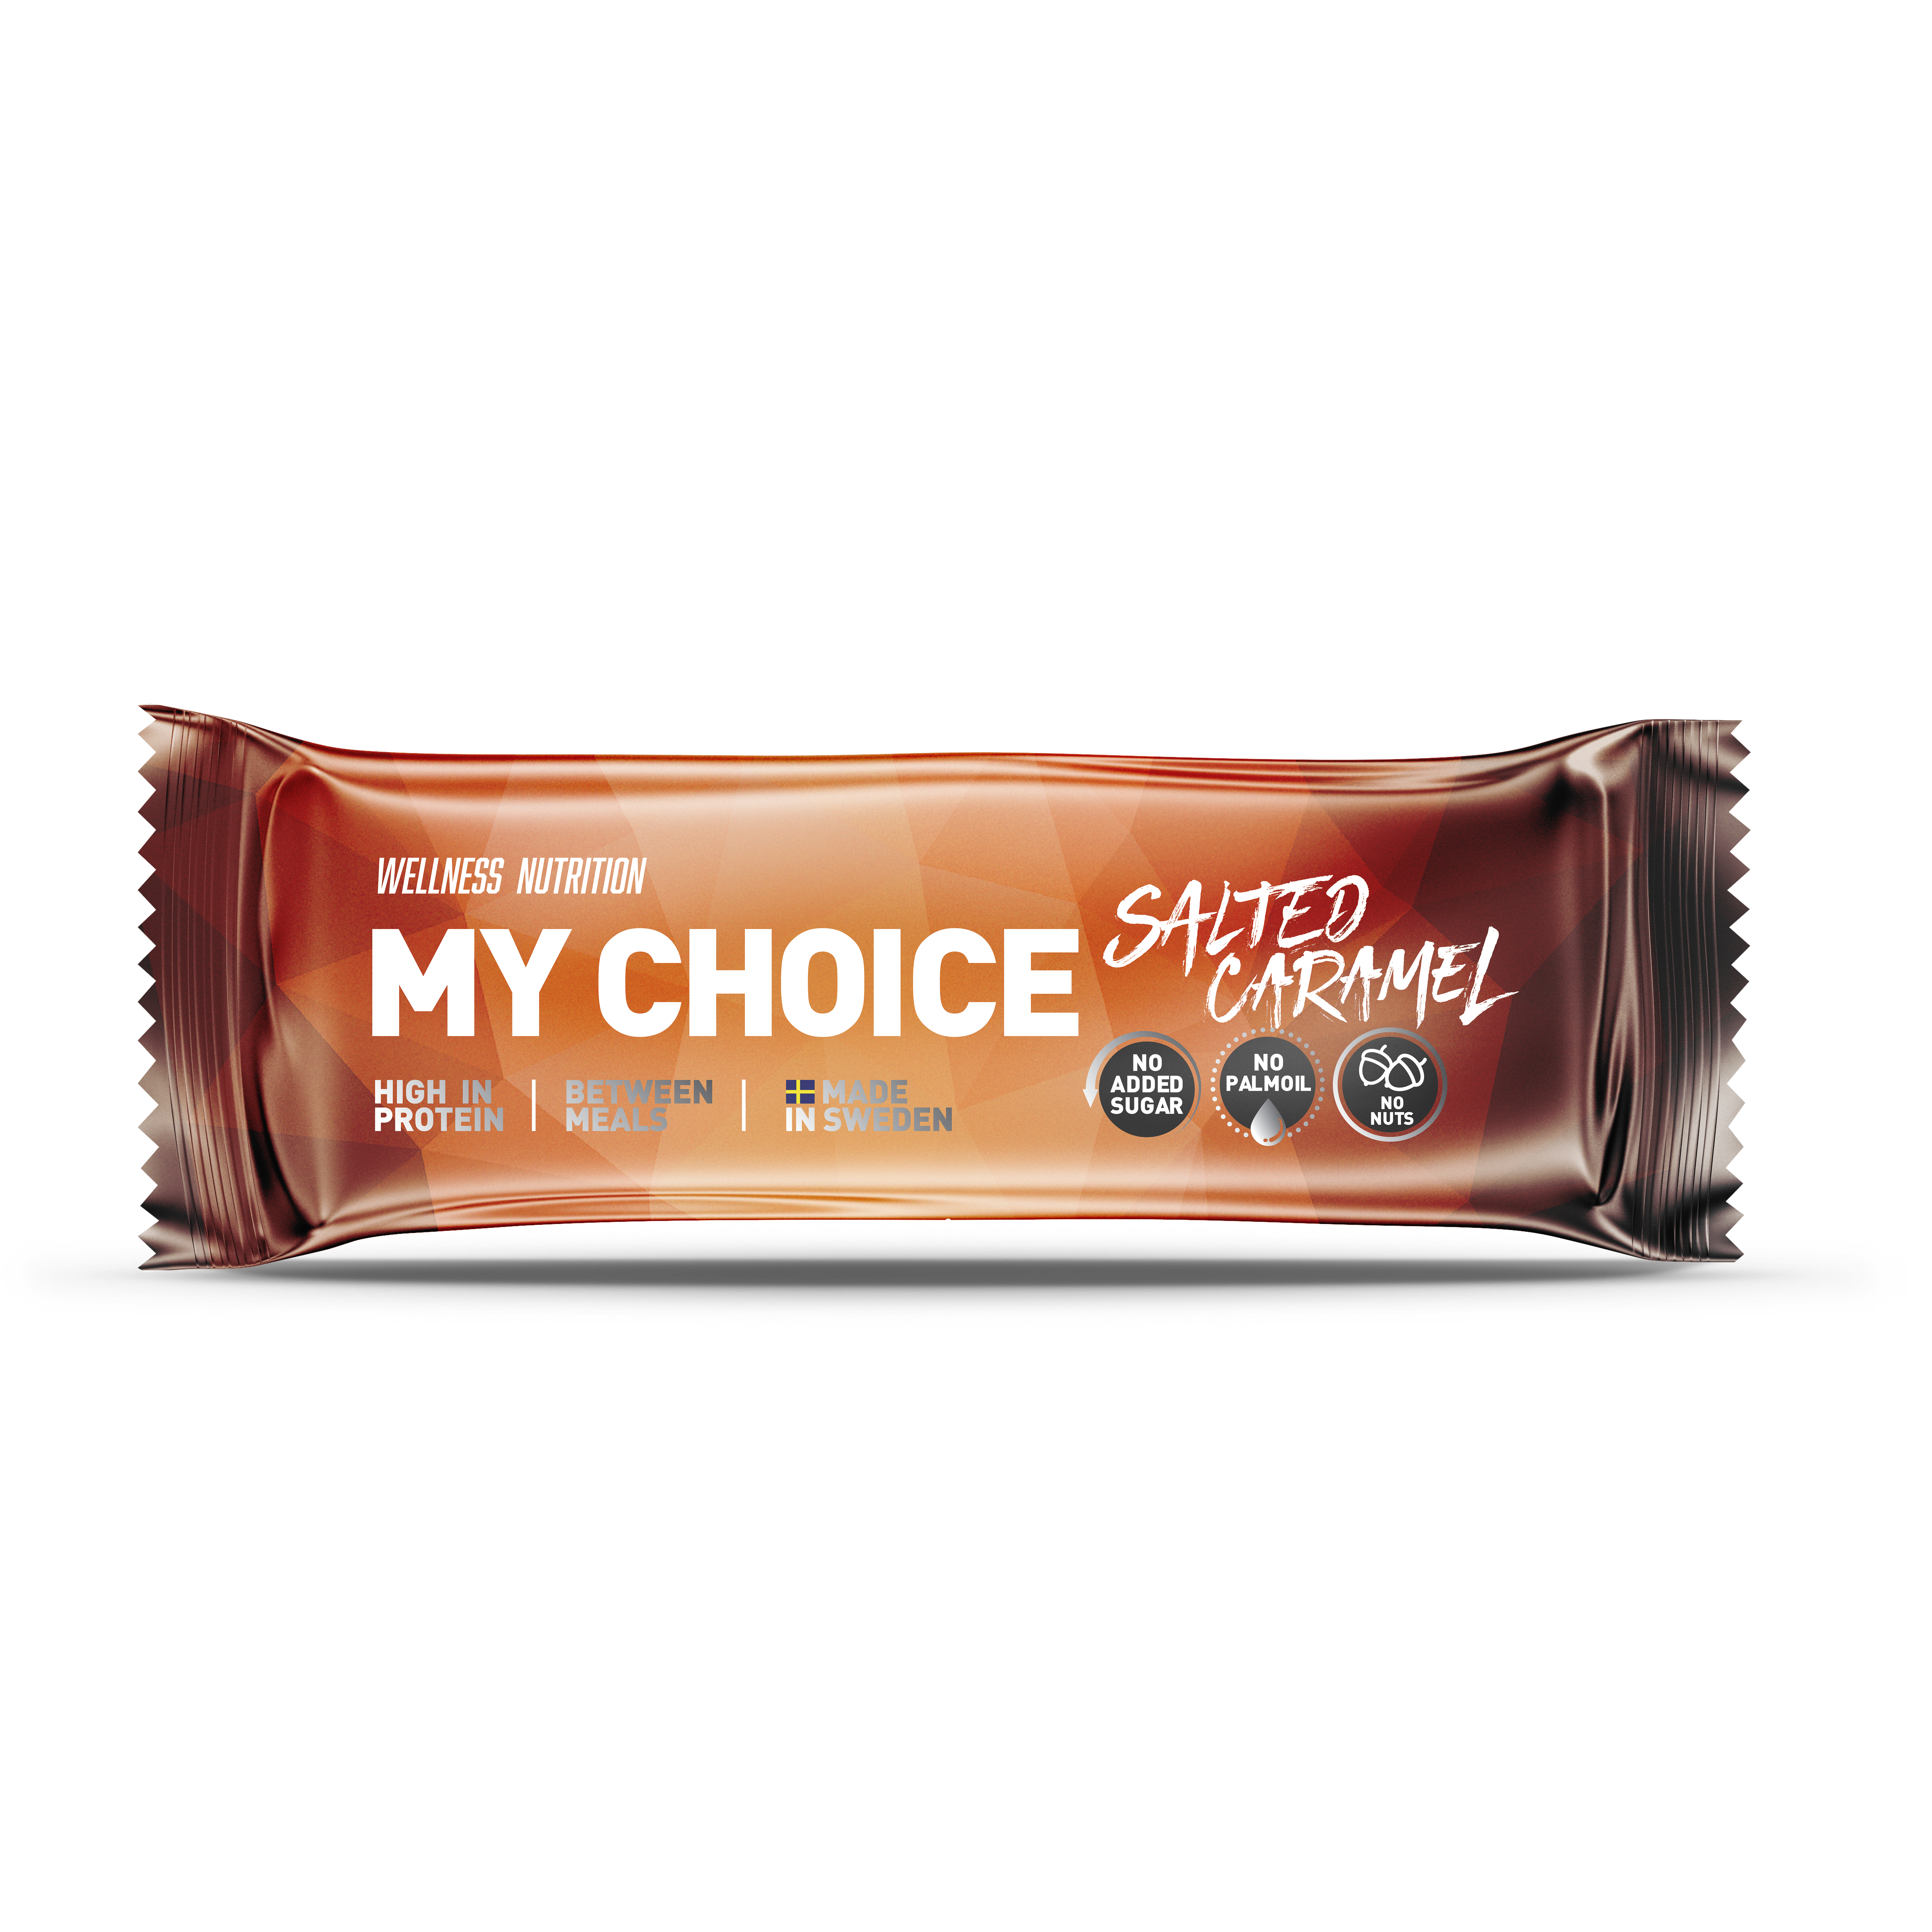 My Choice Caramel